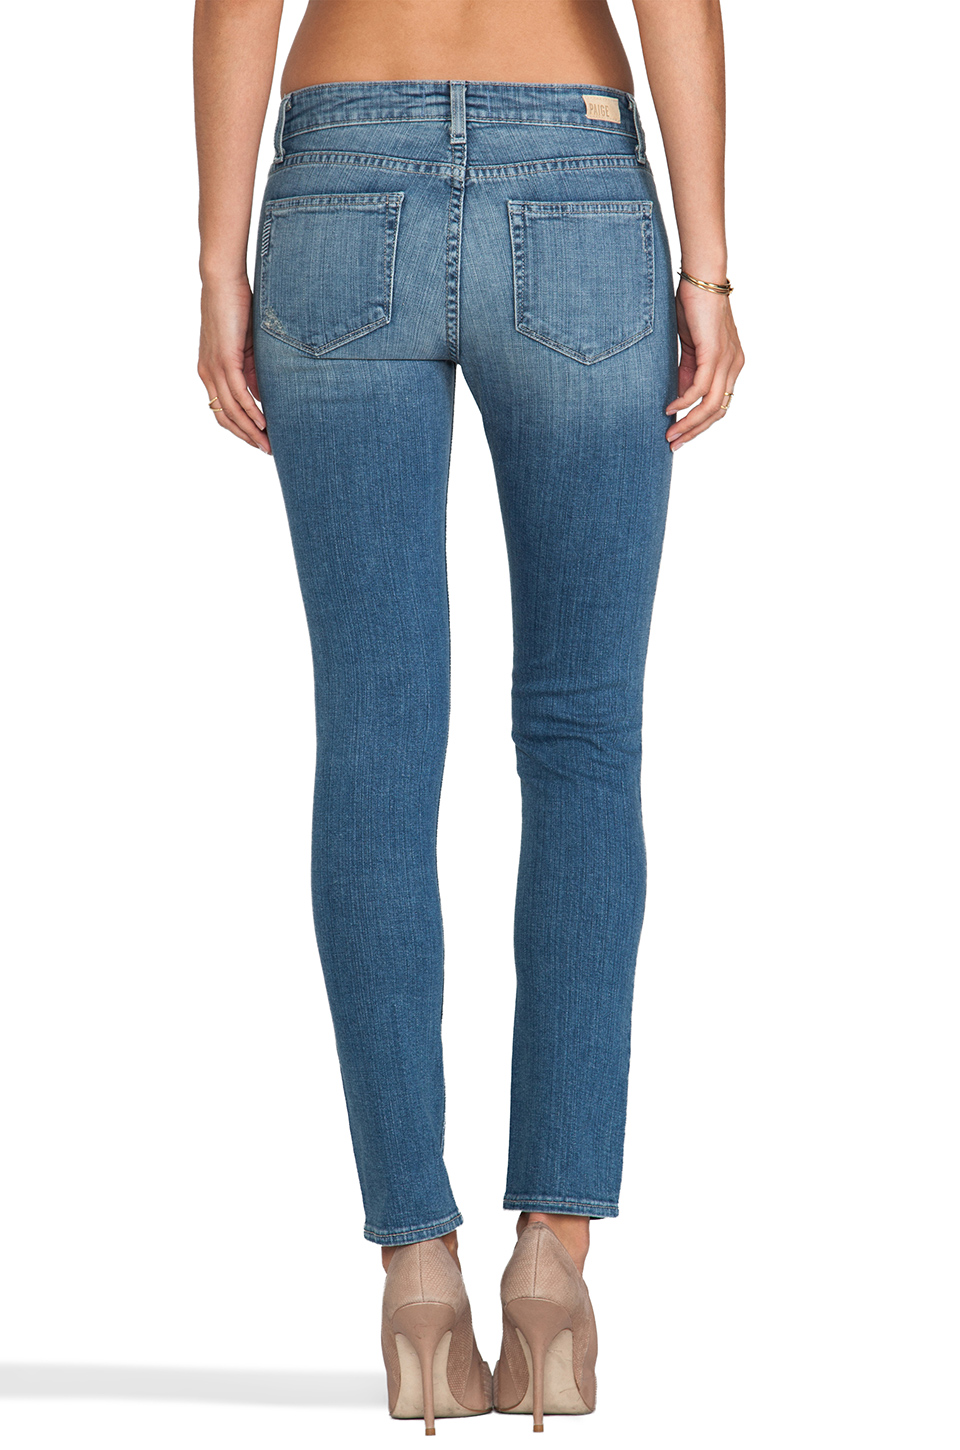 Paige Denim Skyline Ankle Peg in Sadie